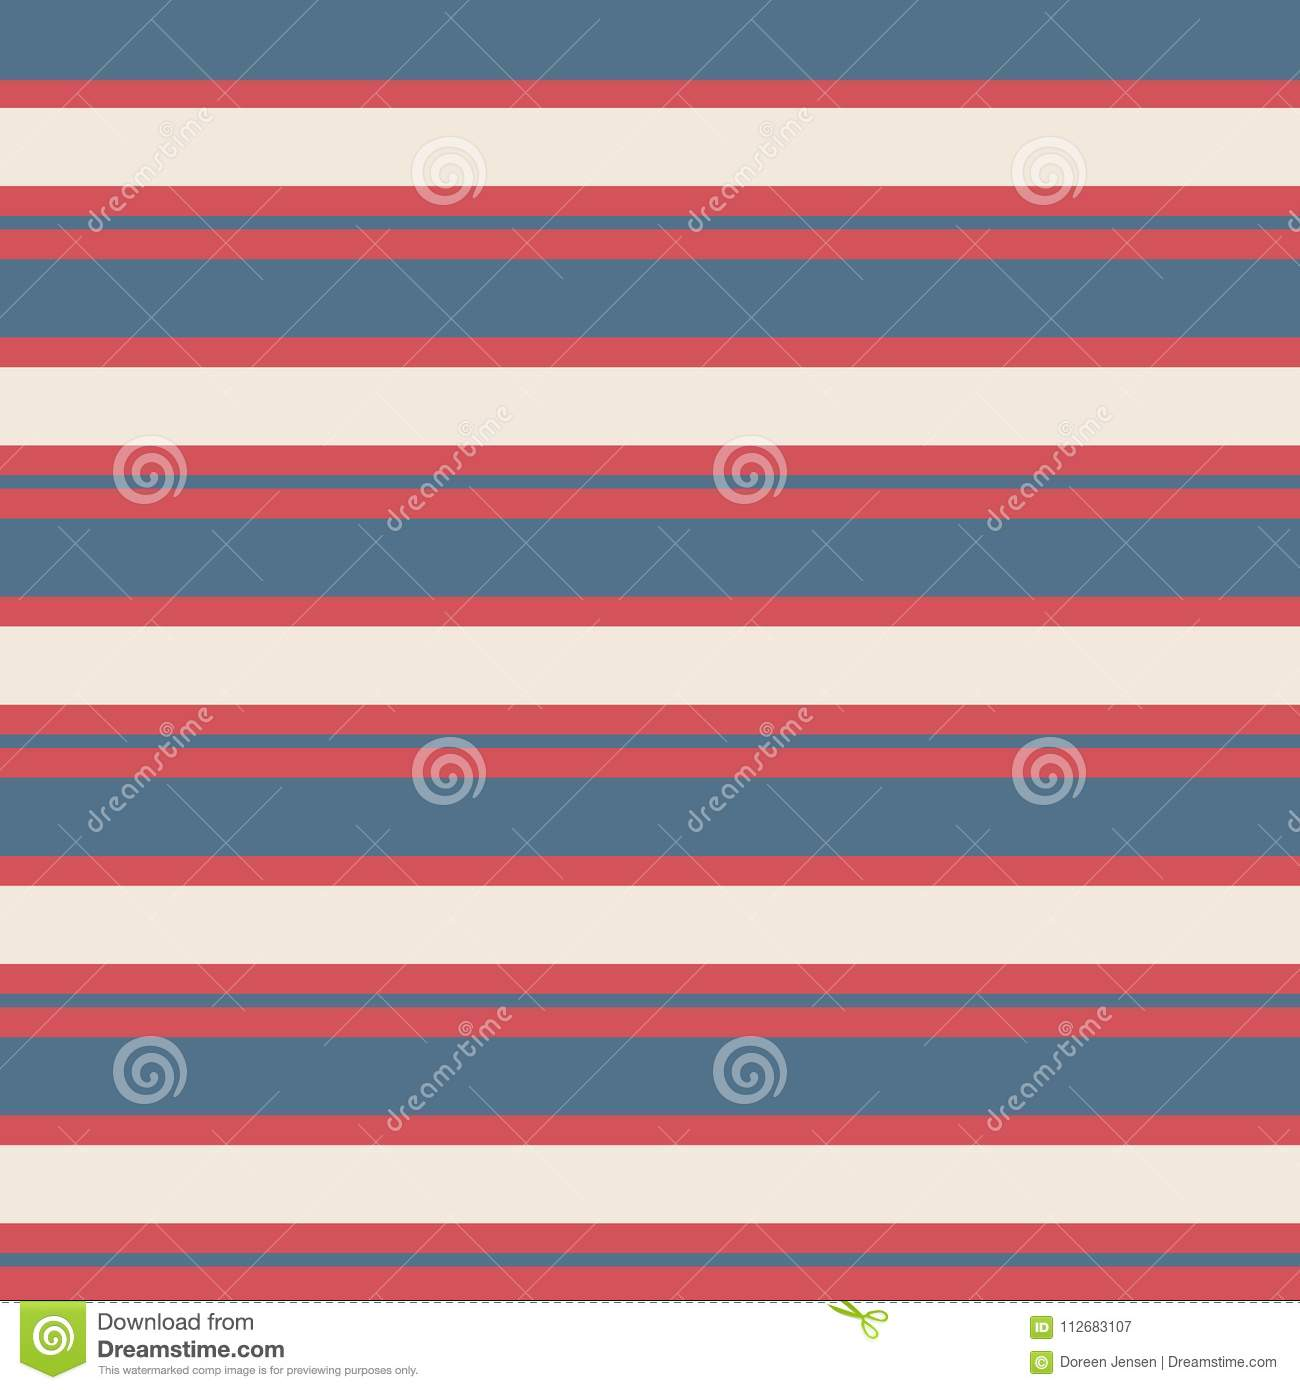 Seamless stripe vintage pattern with colored horizontal parallel stripes red, blue and cream background.